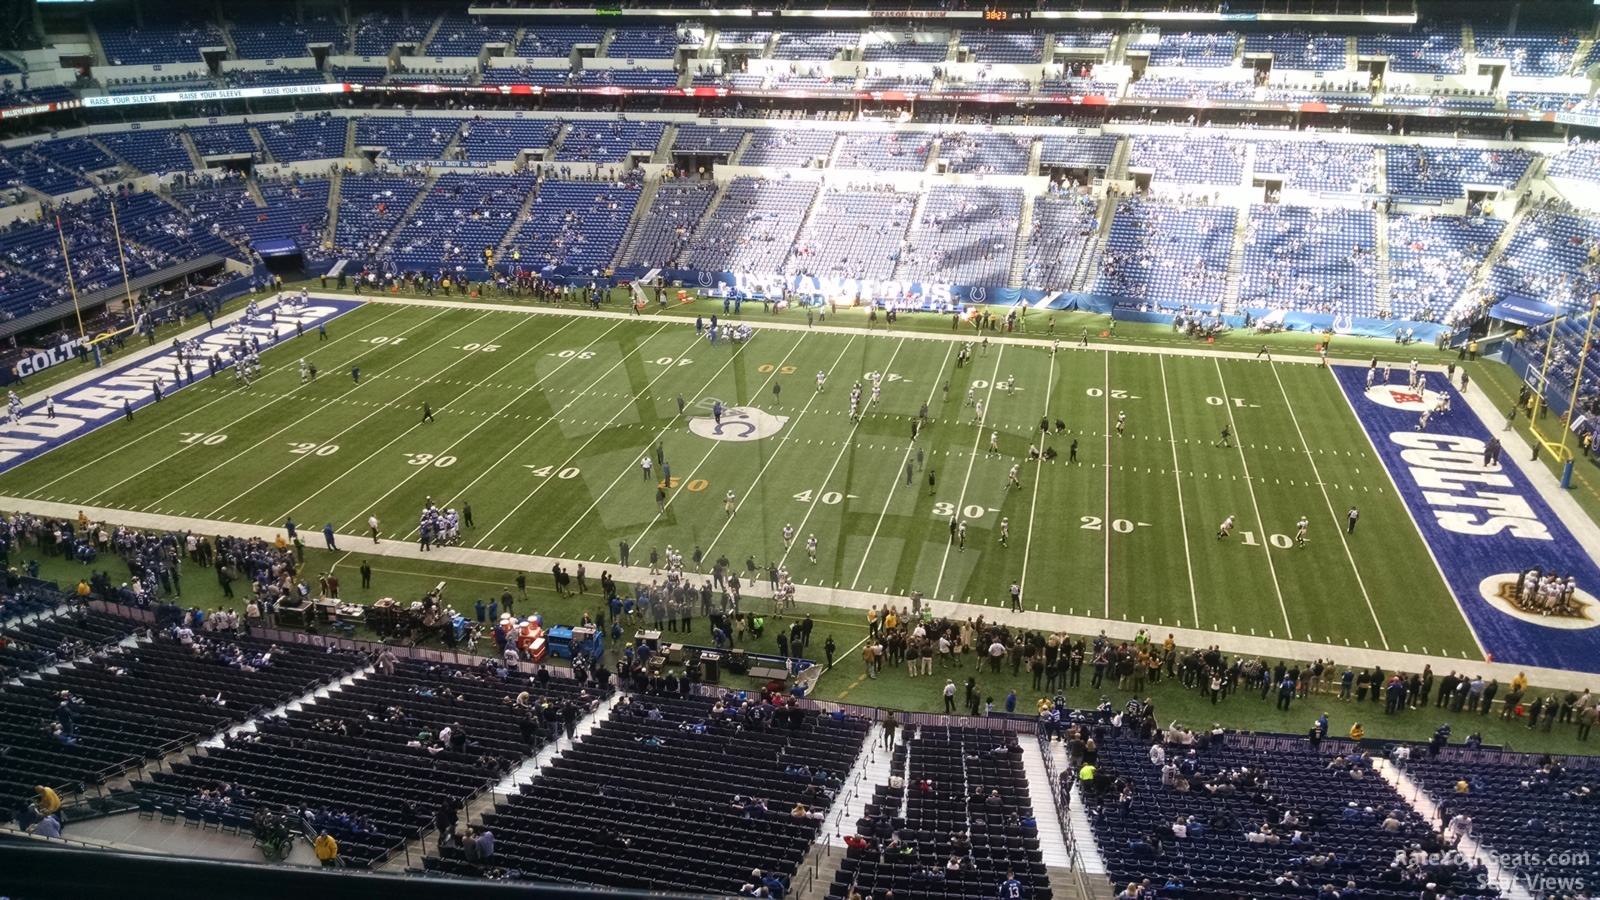 Indianapolis Colts Seat View for Lucas Oil Stadium Section 511, Row 5